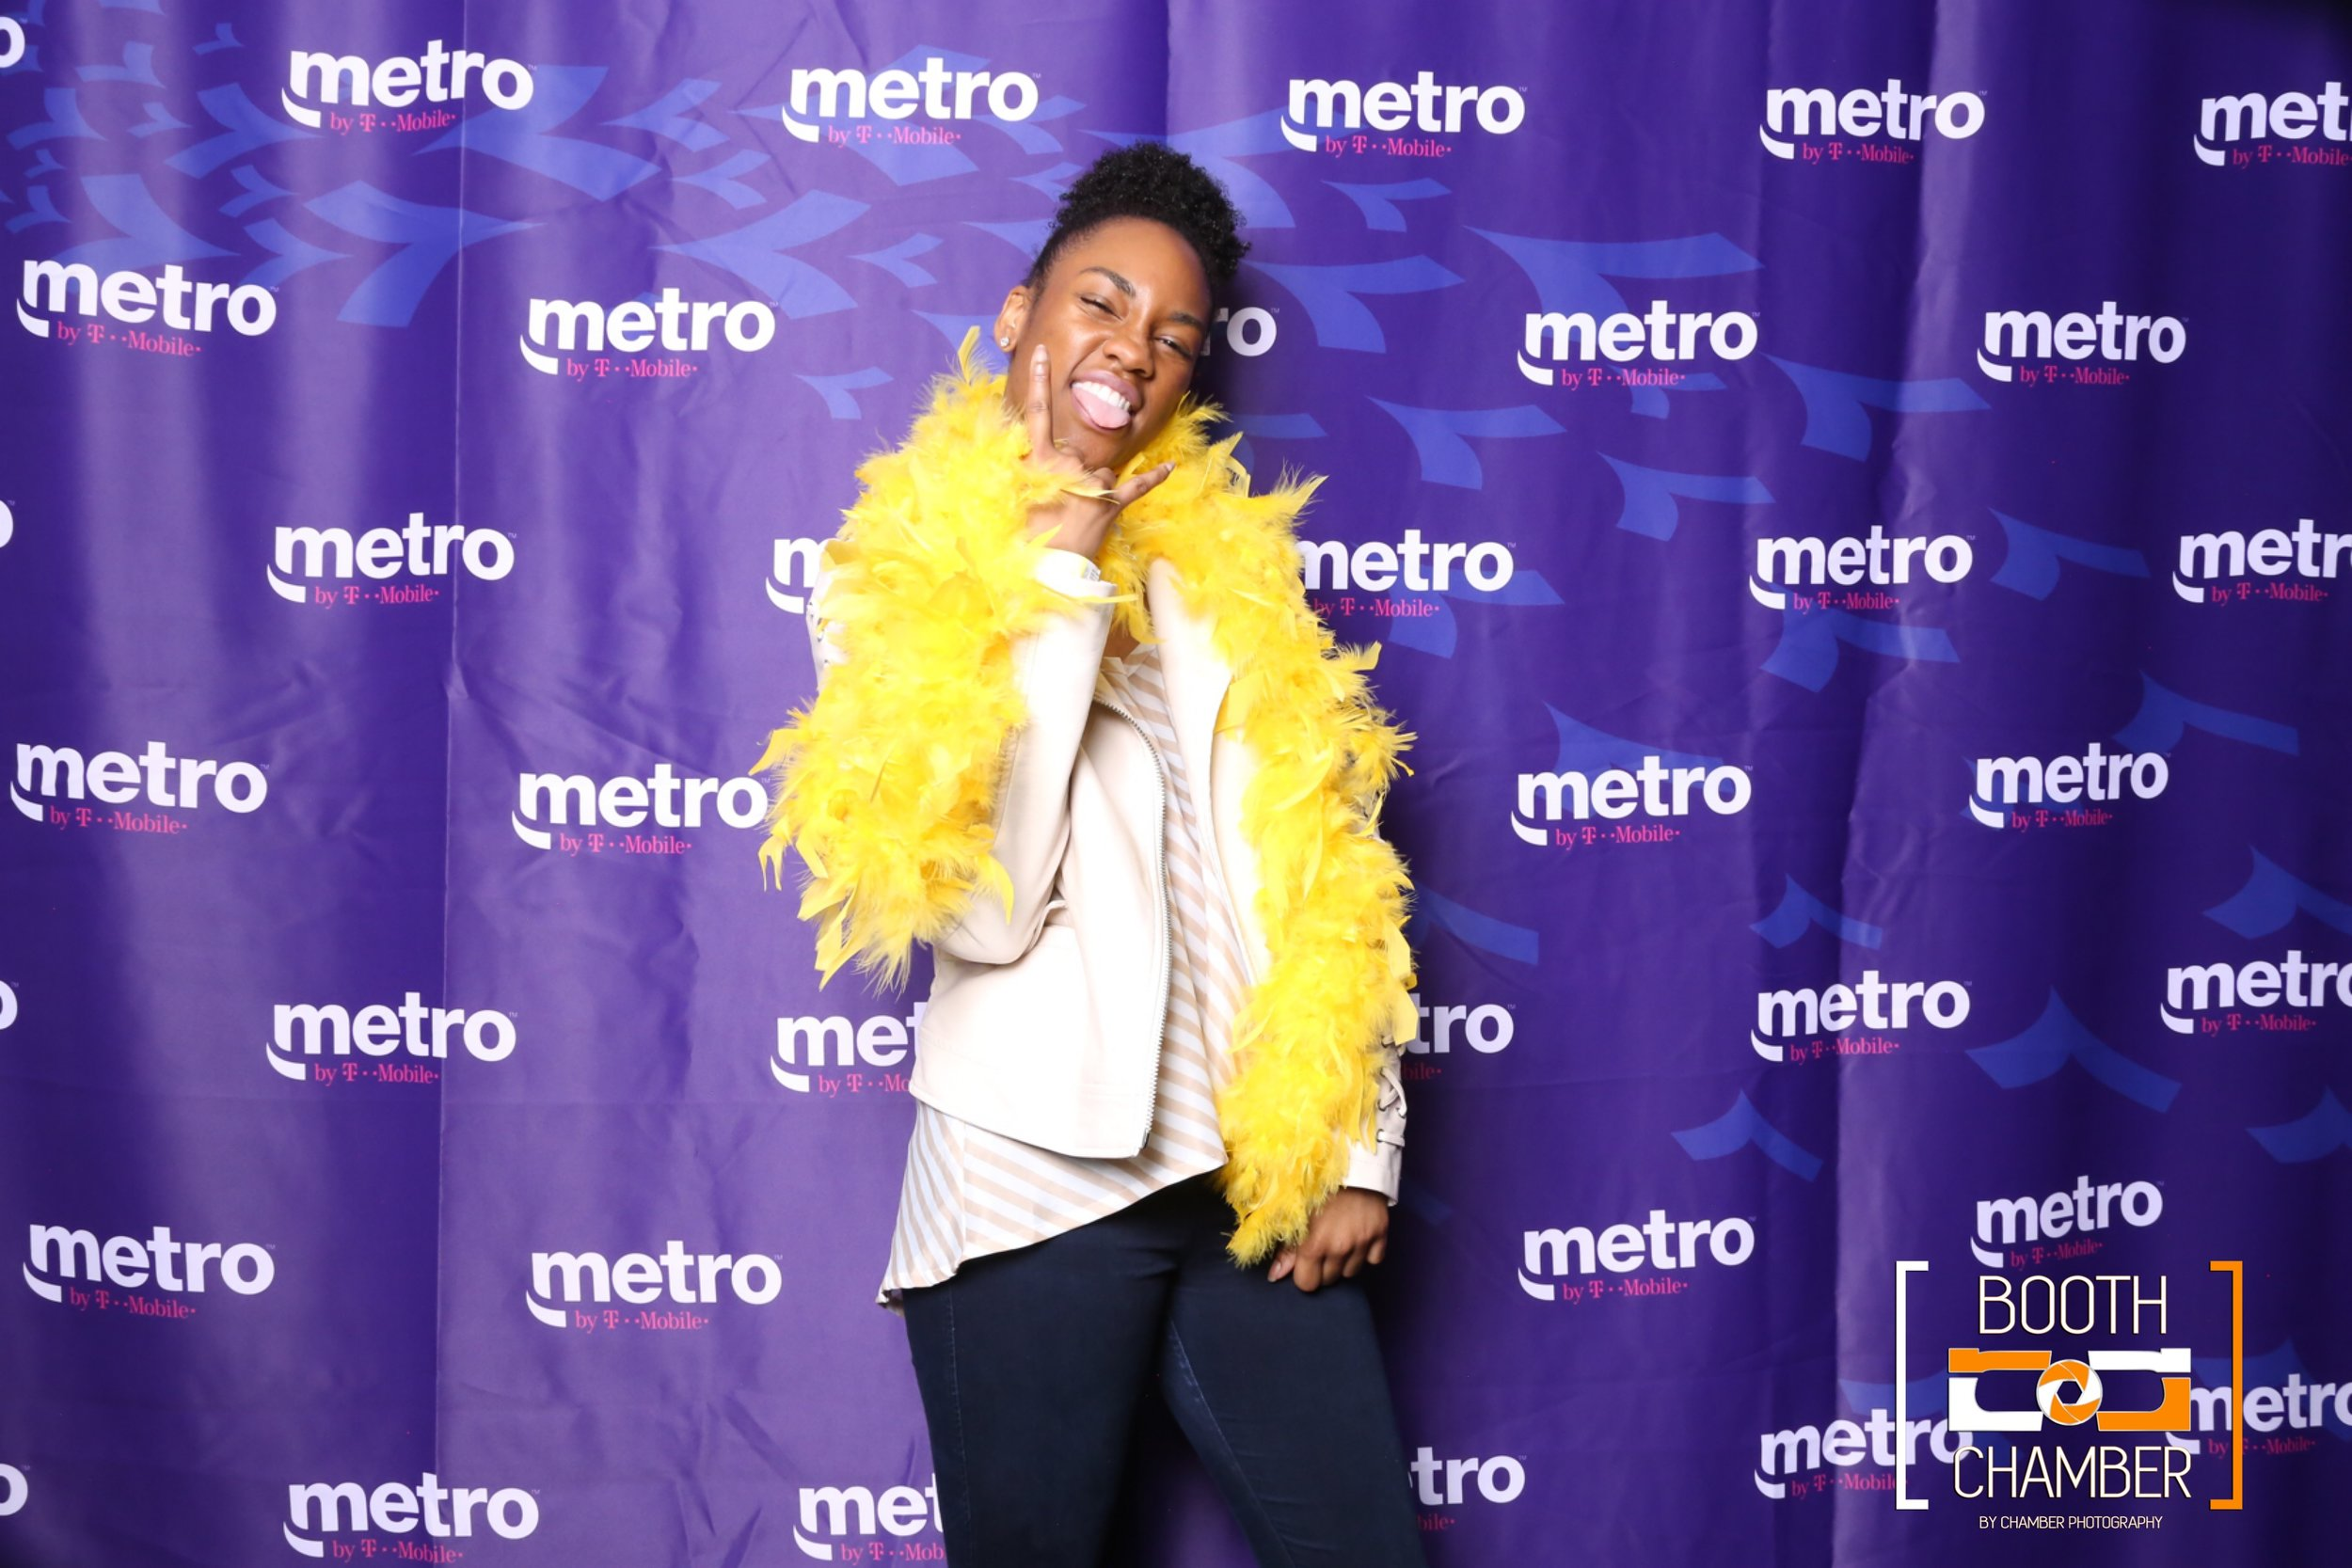 Booth Chamber Photo Booth Beat the Runway Antoine Hart Orlando _7.jpeg